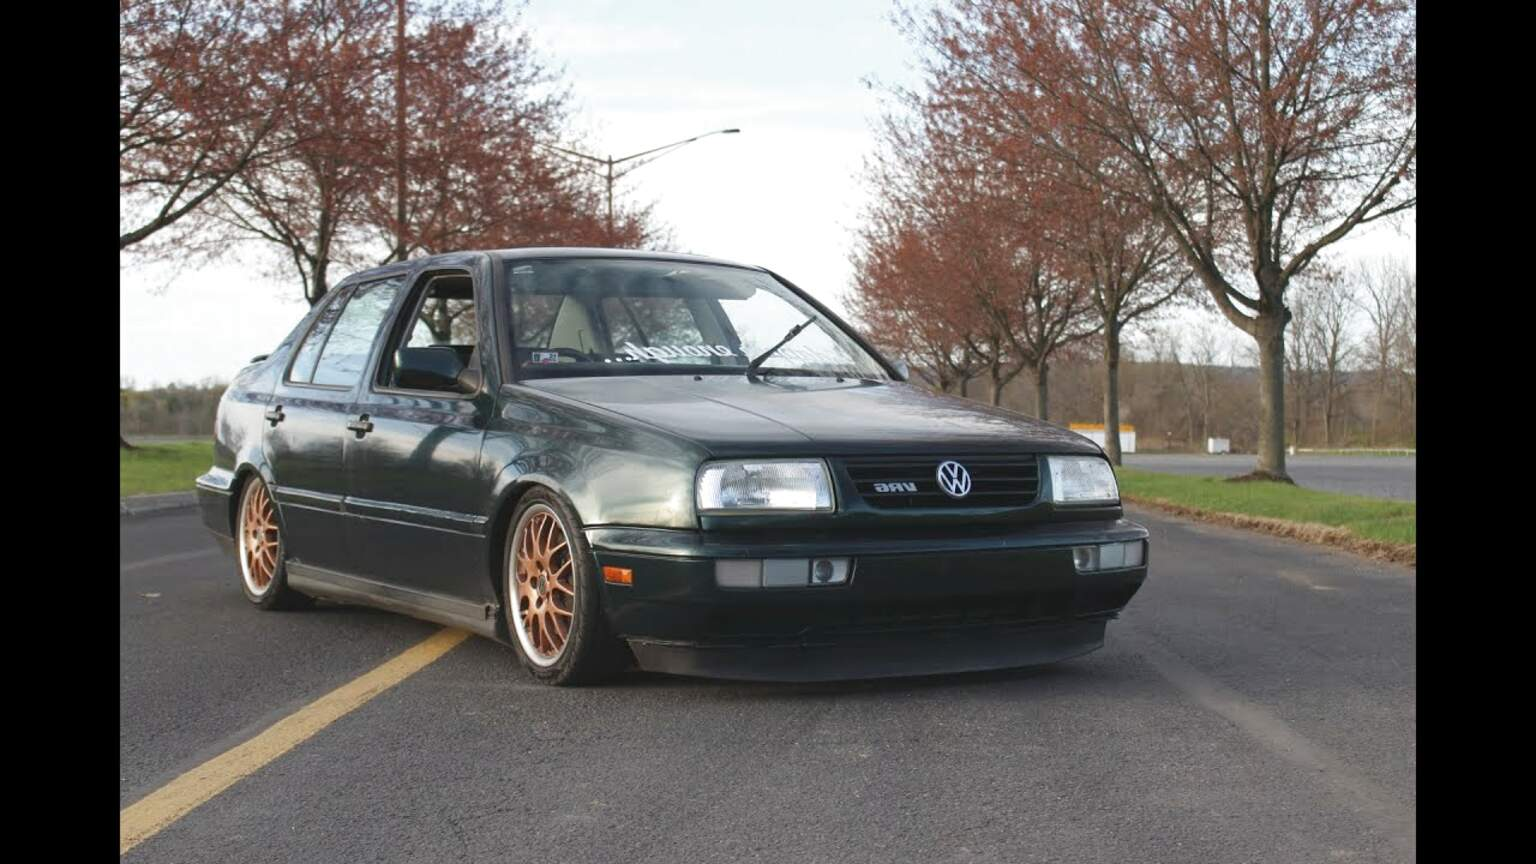 mk3 jetta vr6 for sale only 4 left at 75 mk3 jetta vr6 for sale only 4 left at